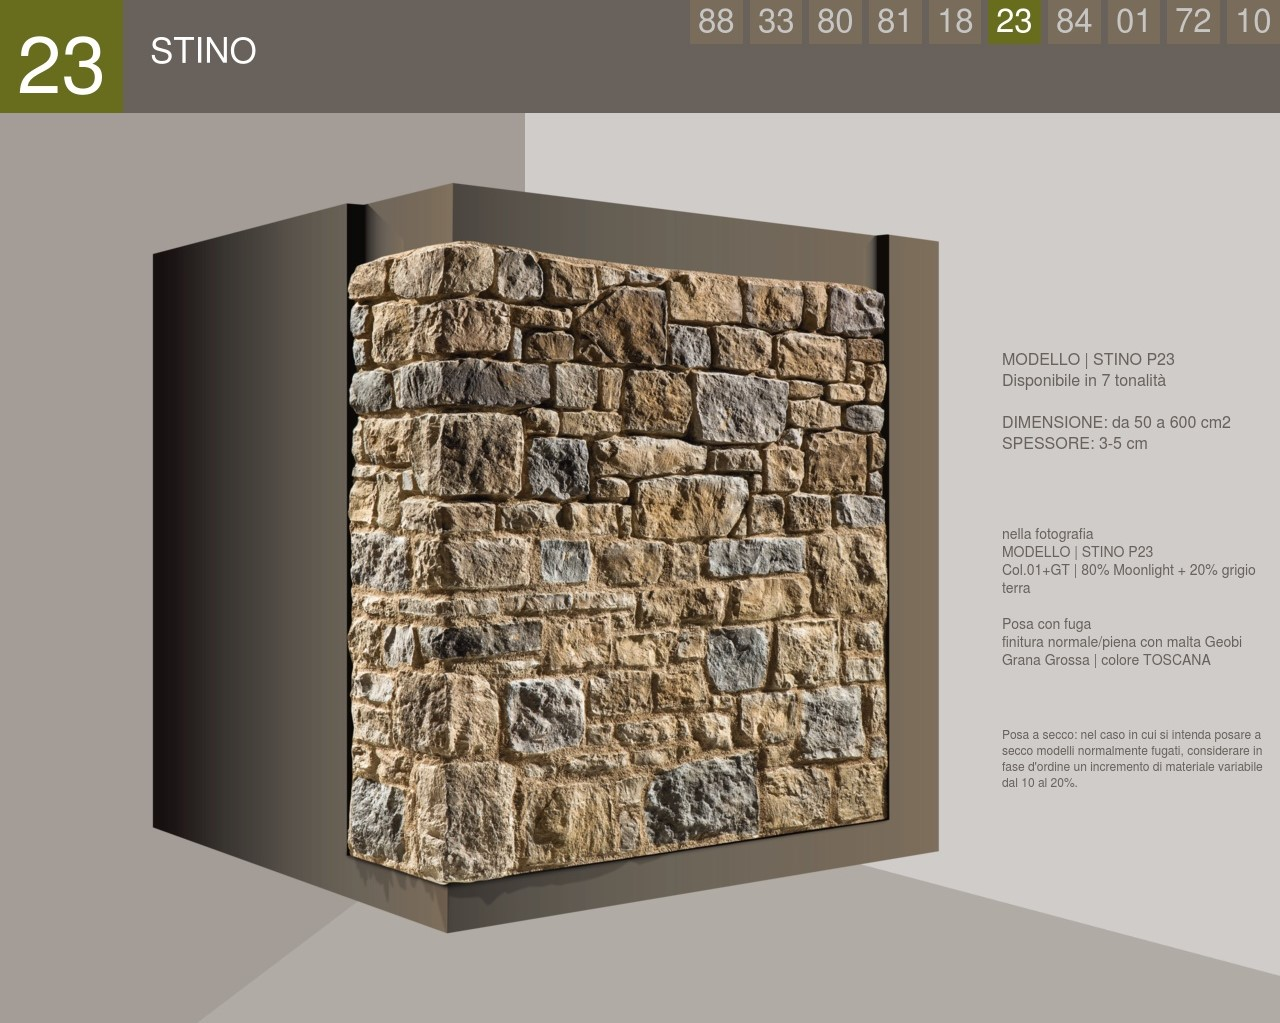 Stino Profile Squared Stone Cladding